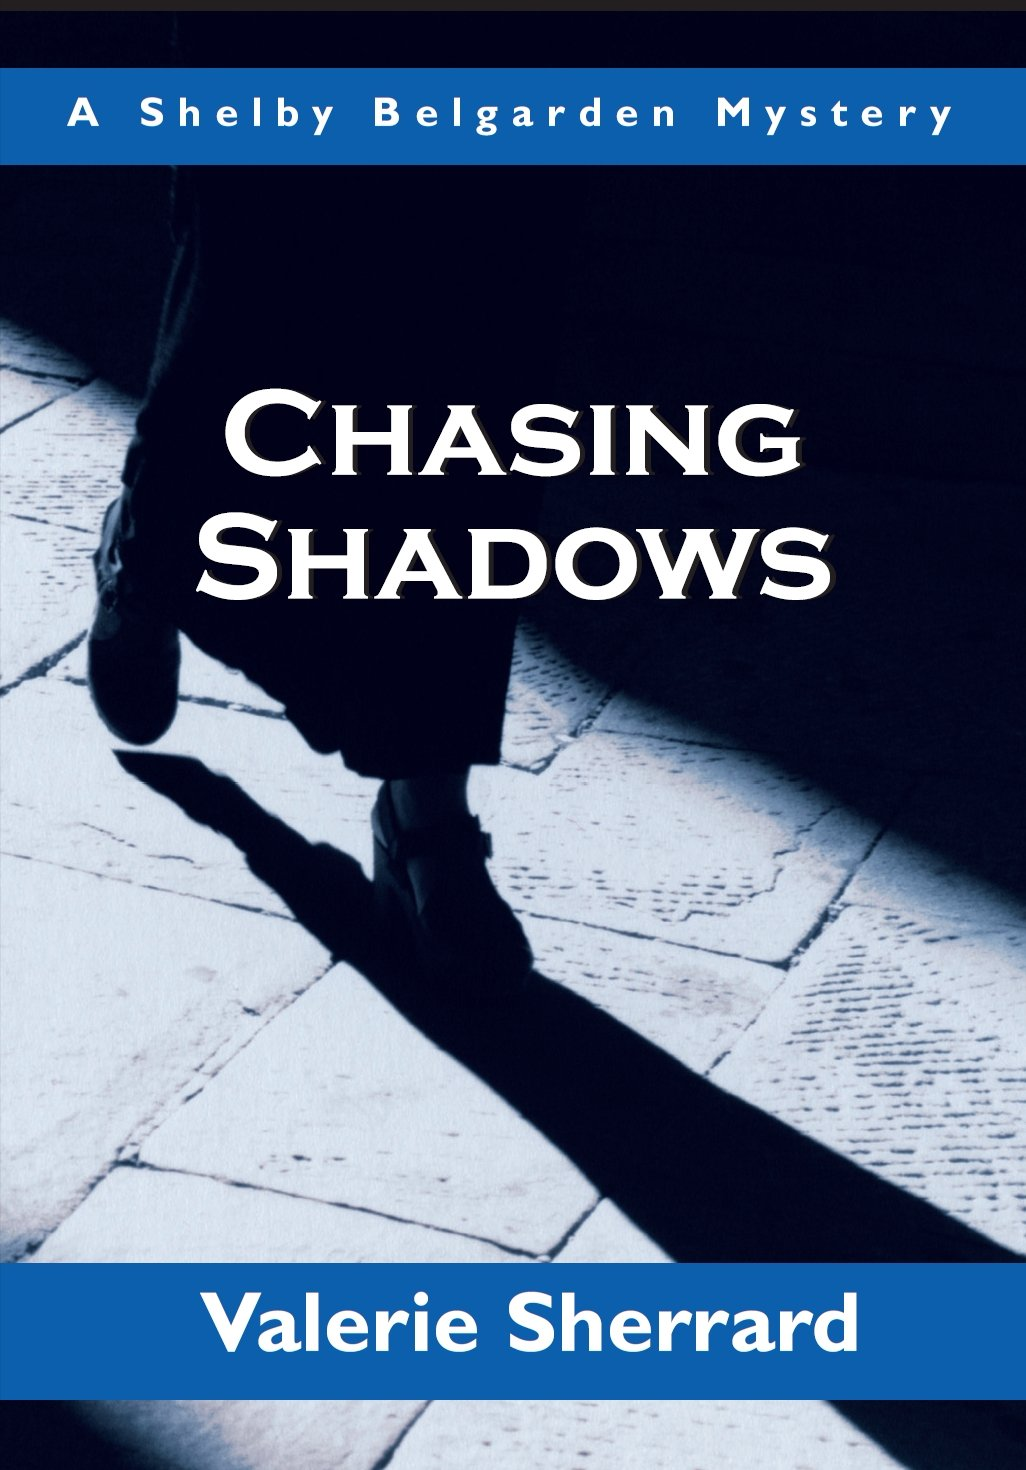 Download Chasing Shadows: A Shelby Belgarden Mystery (Shelby Belgarden Mysteries) ebook